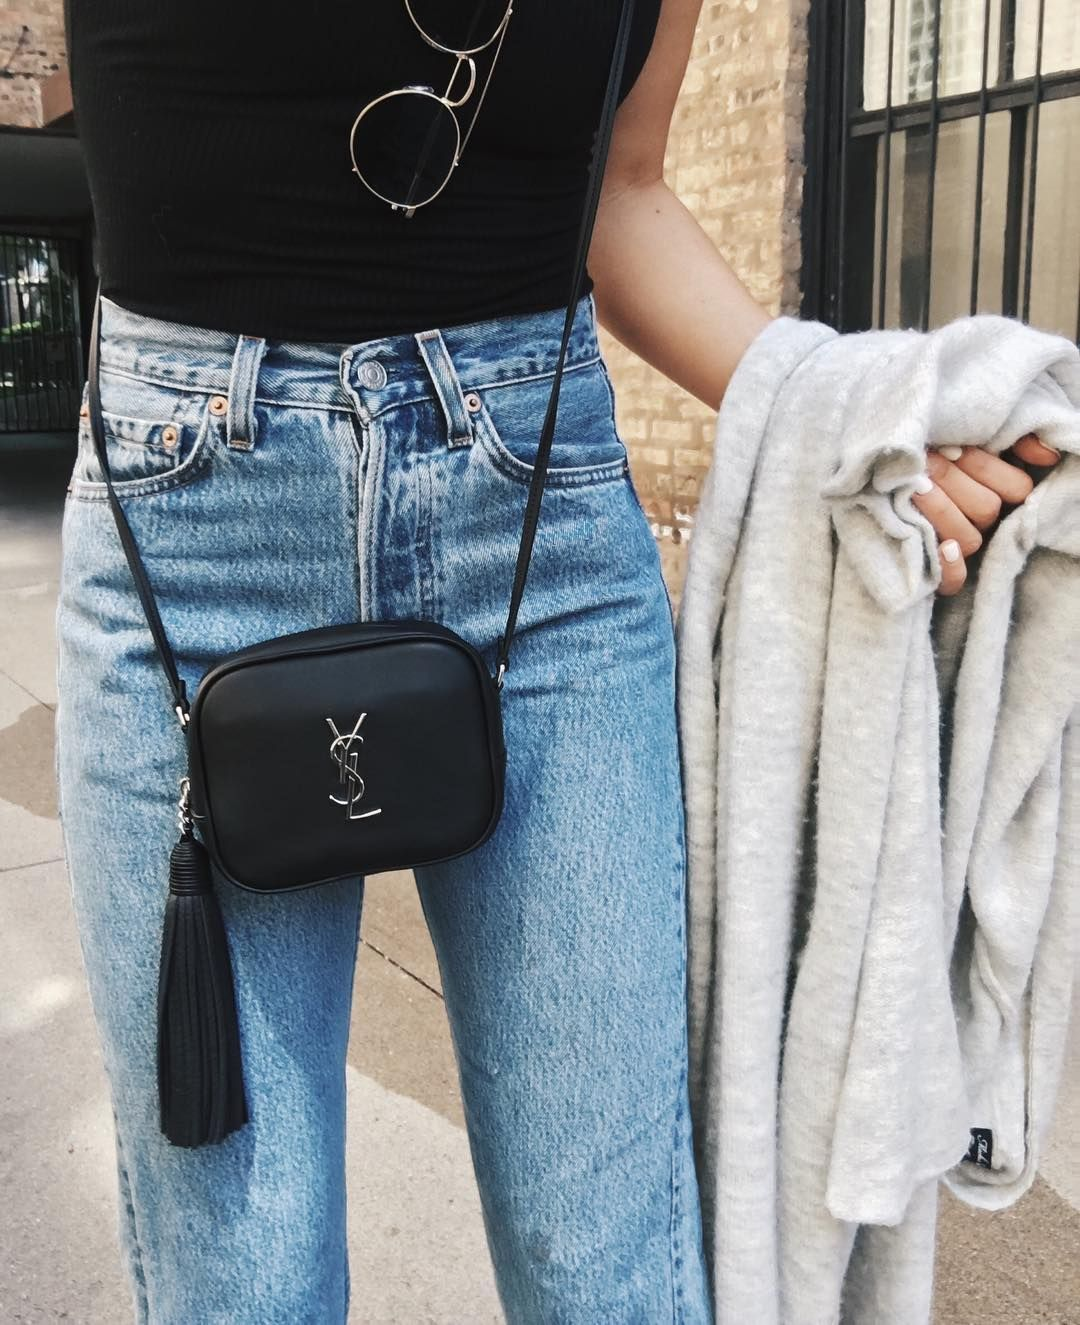 Saint Laurent Blogger Bag. YSL Blogger Bag. YSL Cross,body